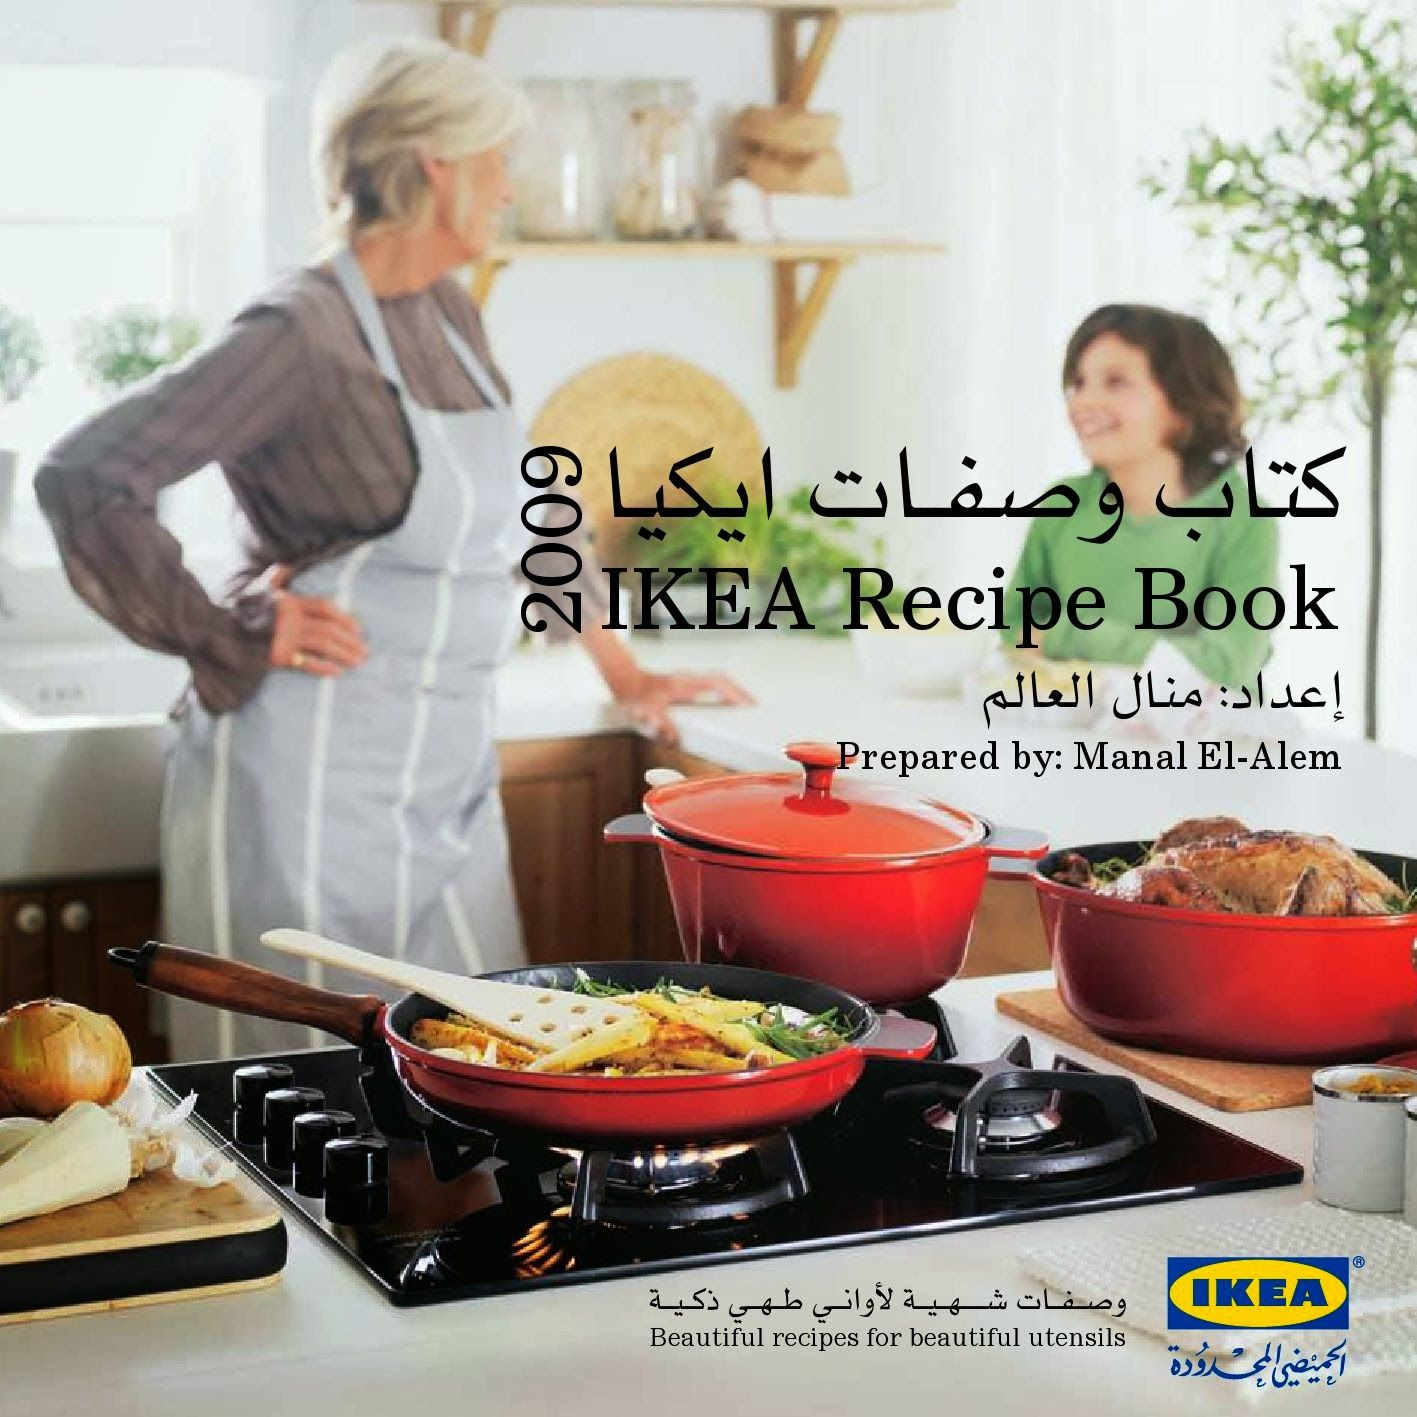 Ikea 68 pages by pdf englisharabic 15 mb http ikea 68 pages by pdf englisharabic 15 forumfinder Choice Image